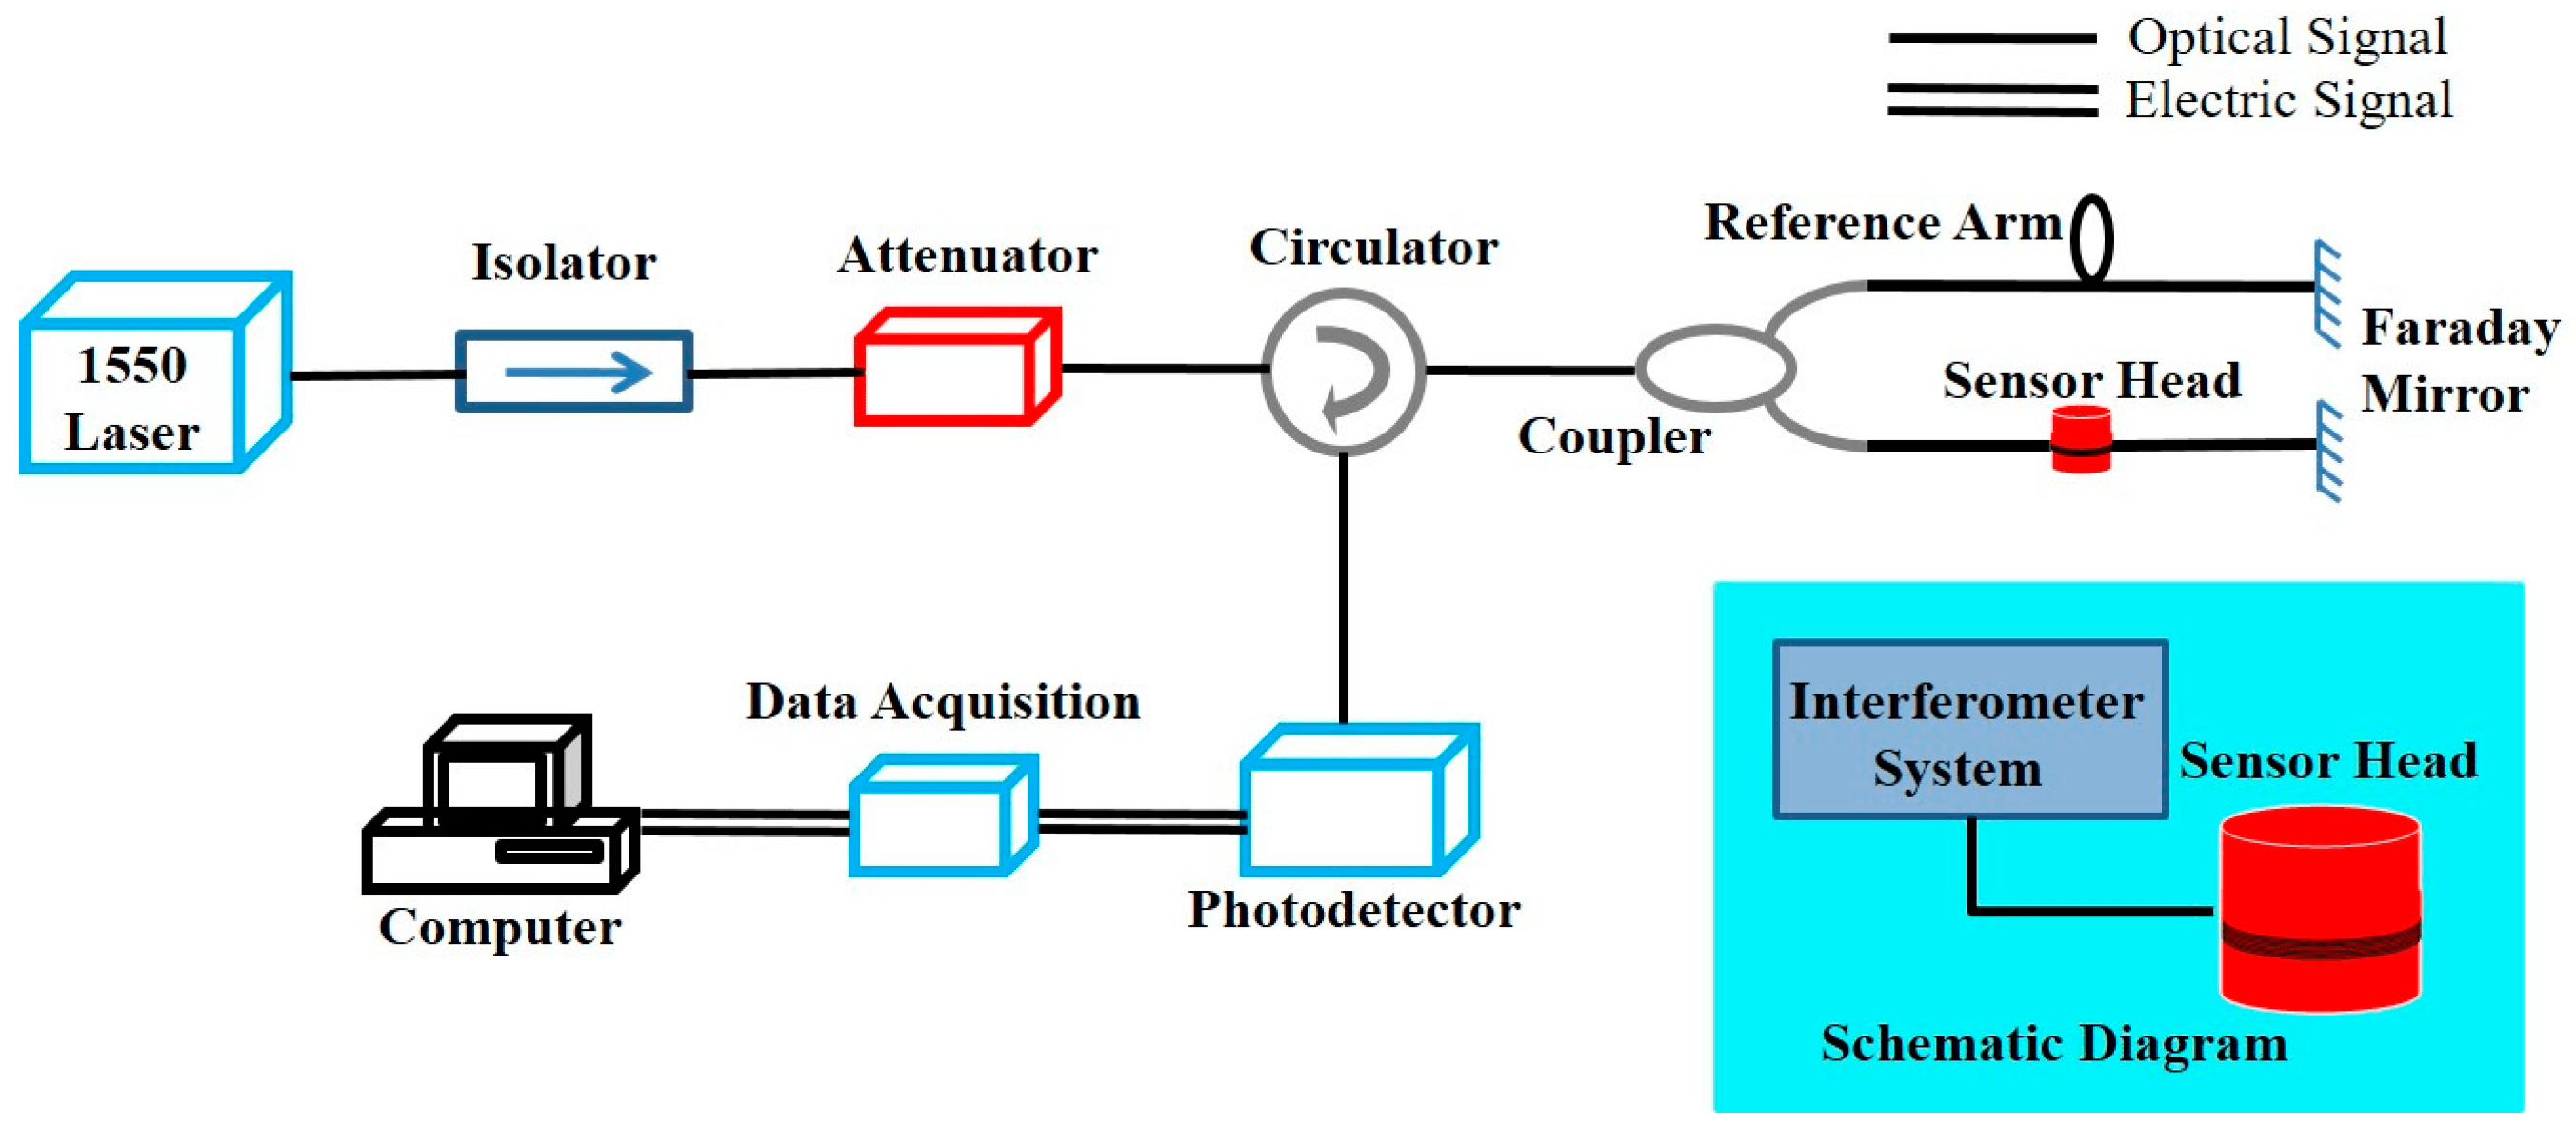 Electrical Cable Block Diagram